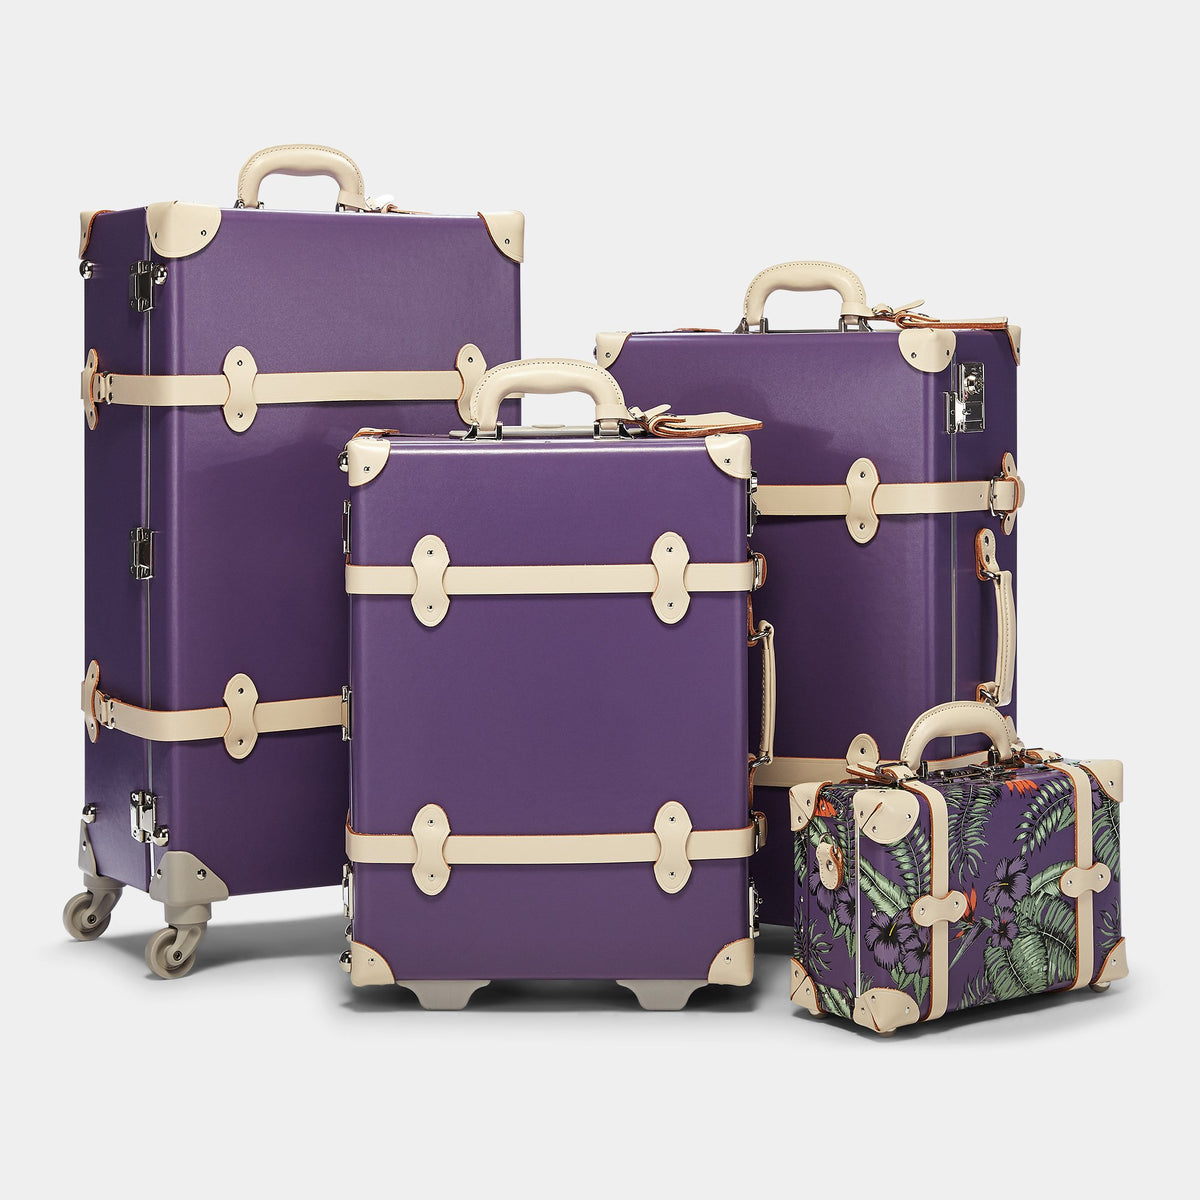 The Botanist Spinner in Purple - Vintage-Inspired Trunk Suitcase - Alongside matching cases from the Botanist Purple collection